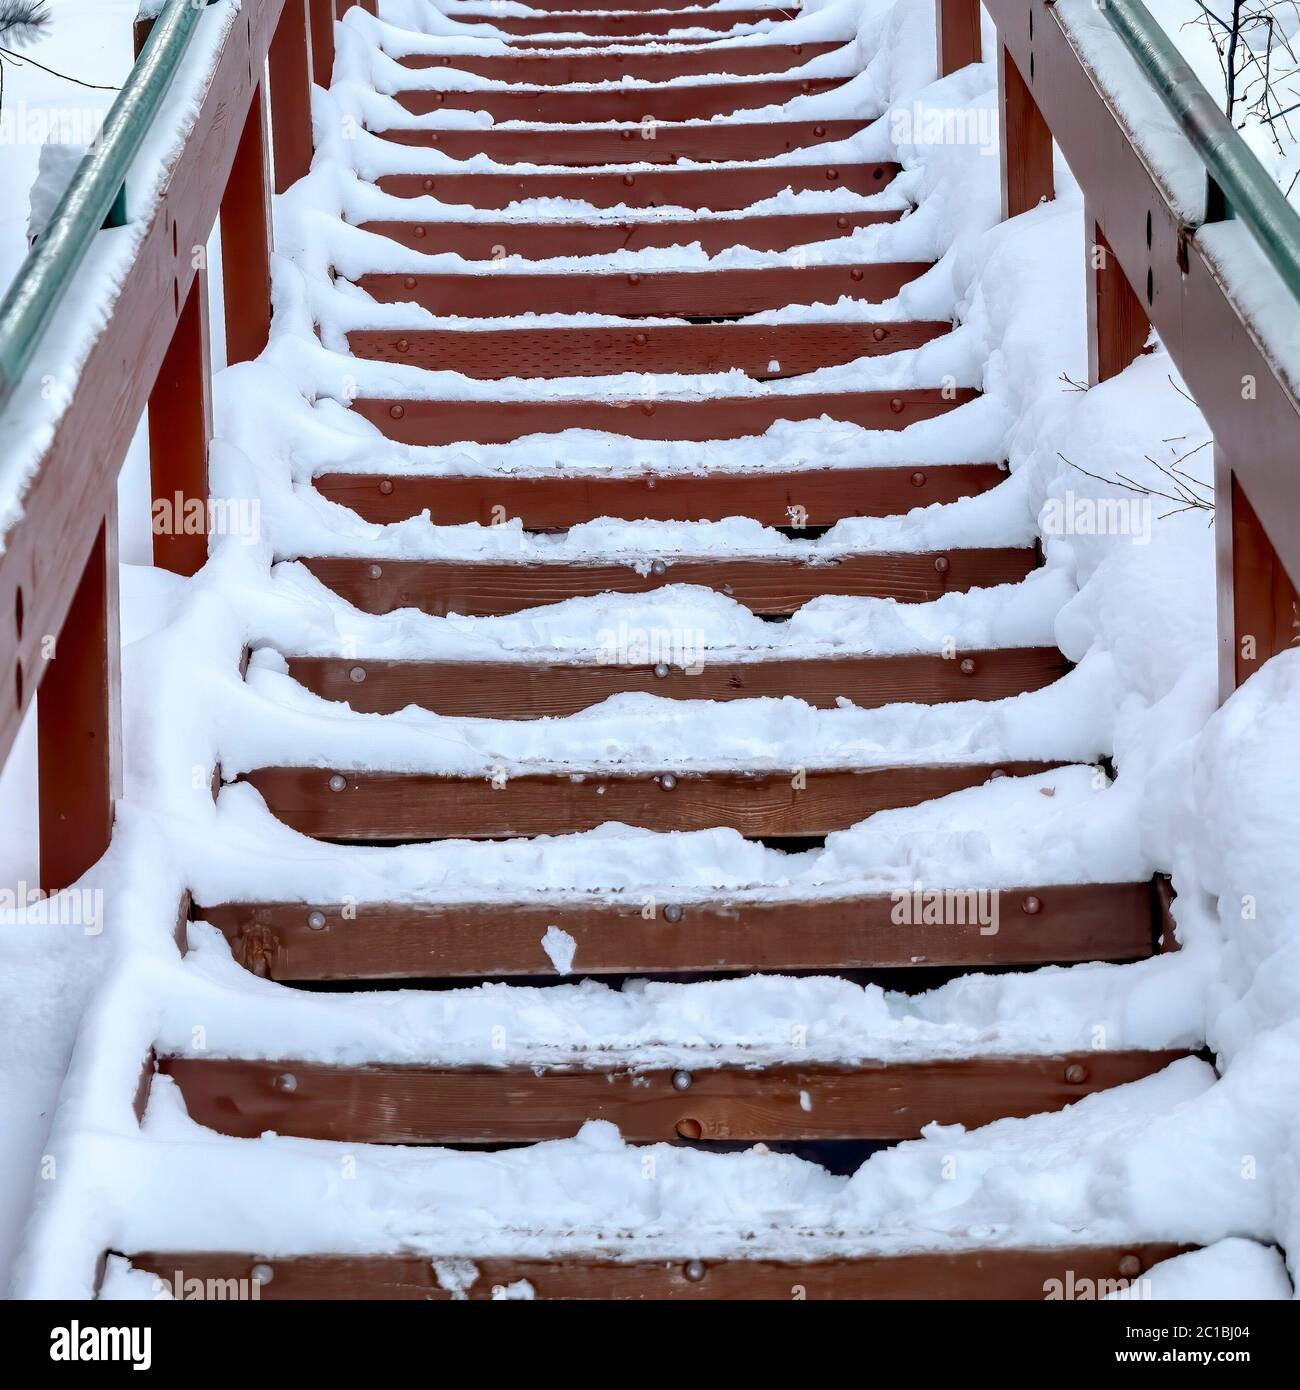 Square Focus on stairway that goes up a snowy hill with residential homes in winter Stock Photo